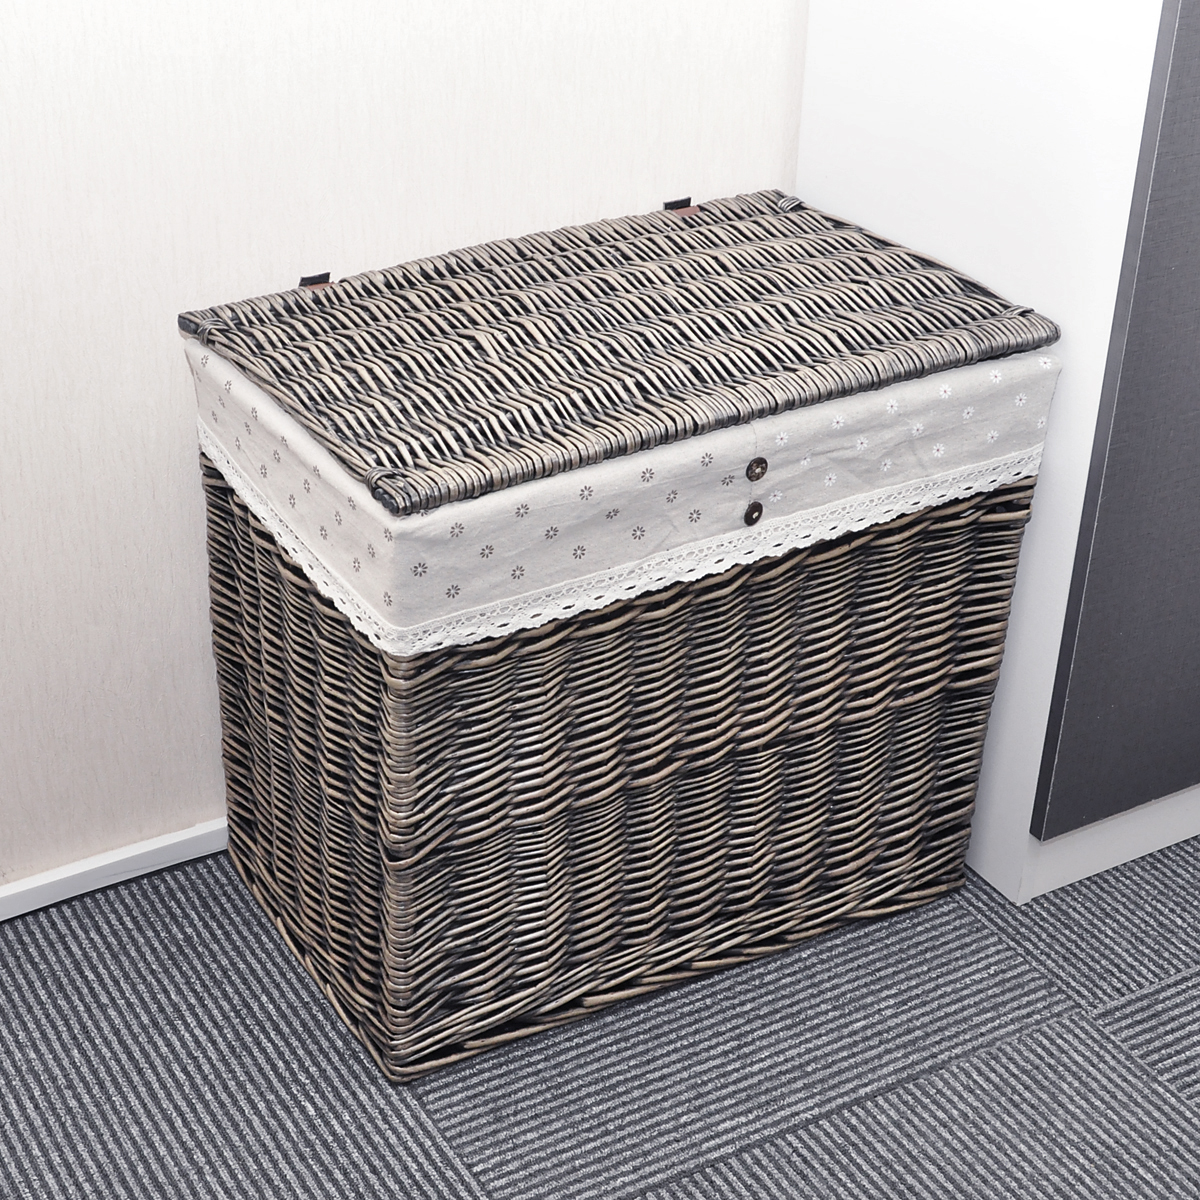 Image of: Cute Divided Laundry Hamper